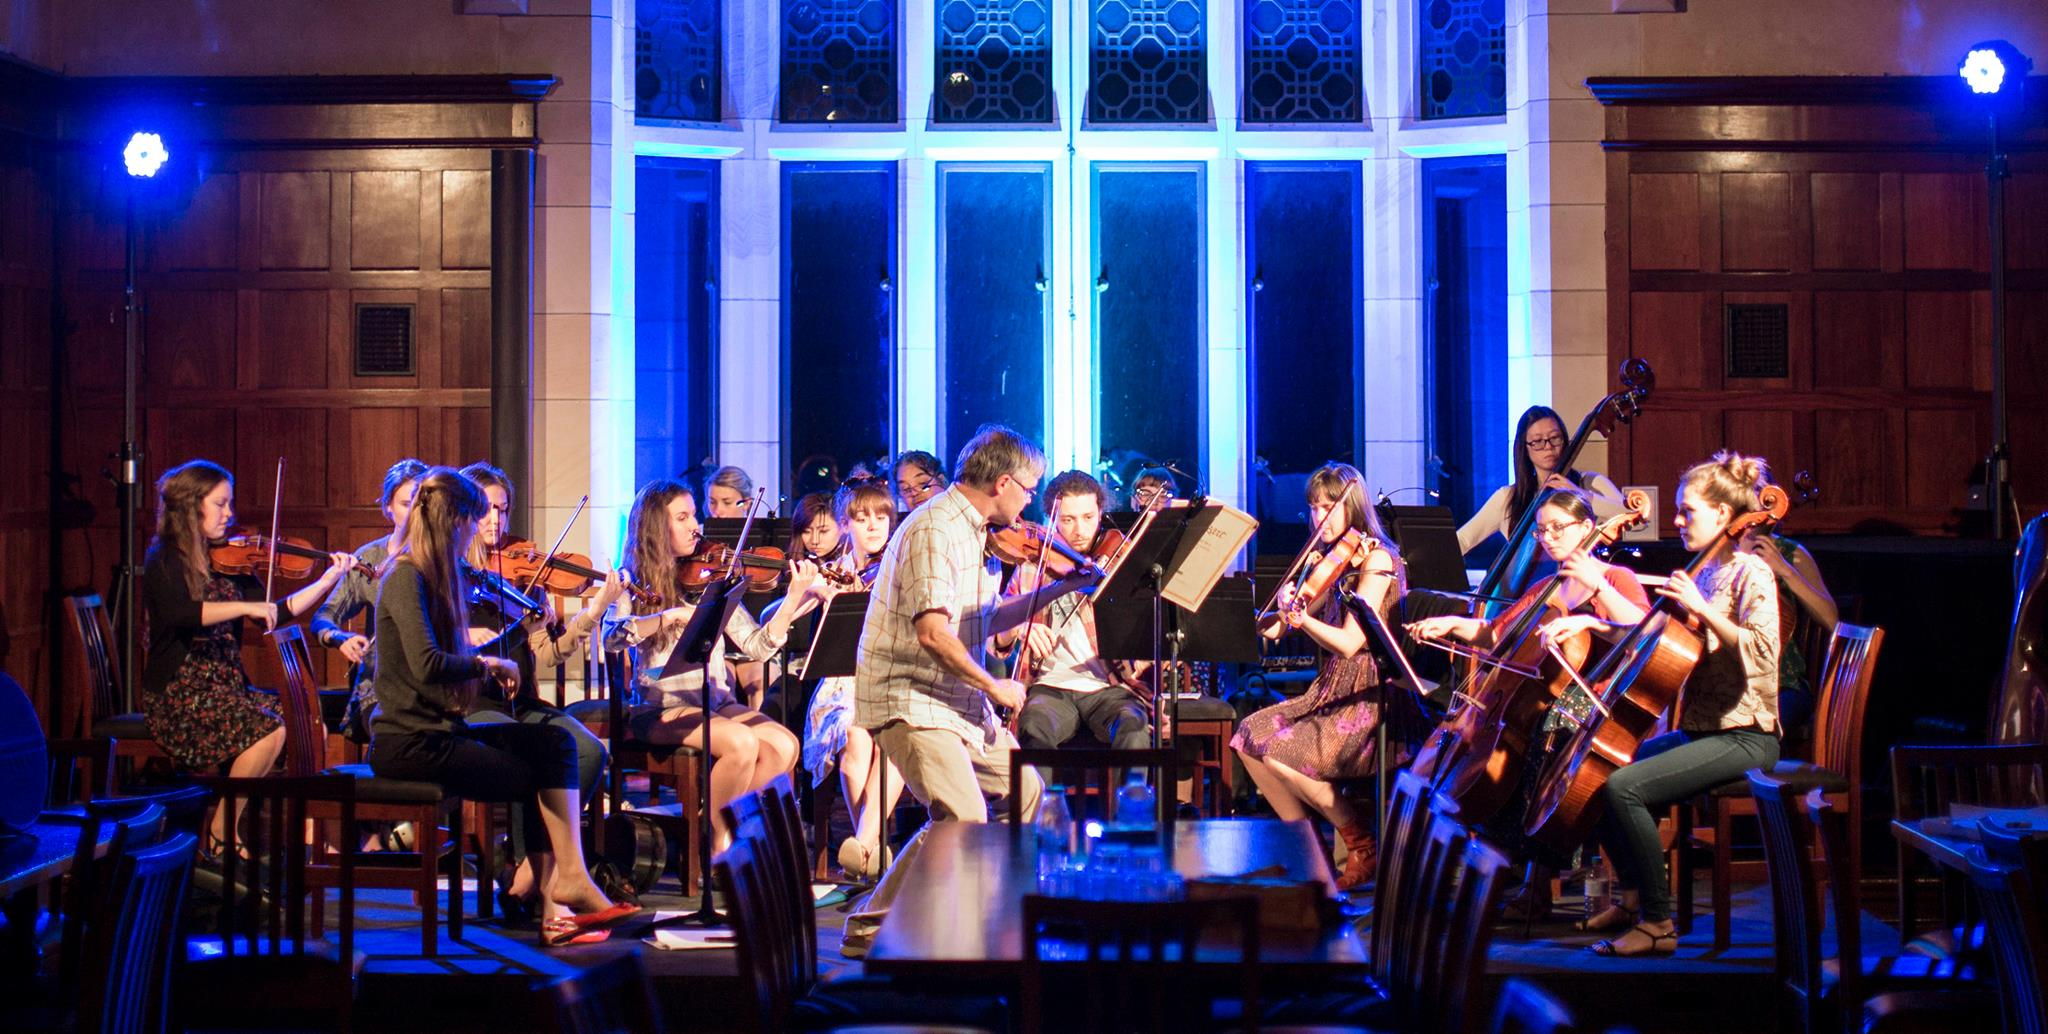 05/06/2016: Chamber Orchestra Gala Lauch   The Chamber Orchestra of St George's College focuses on developing and extending ensemble skills beyond university studies for recent graduates and young professionals.